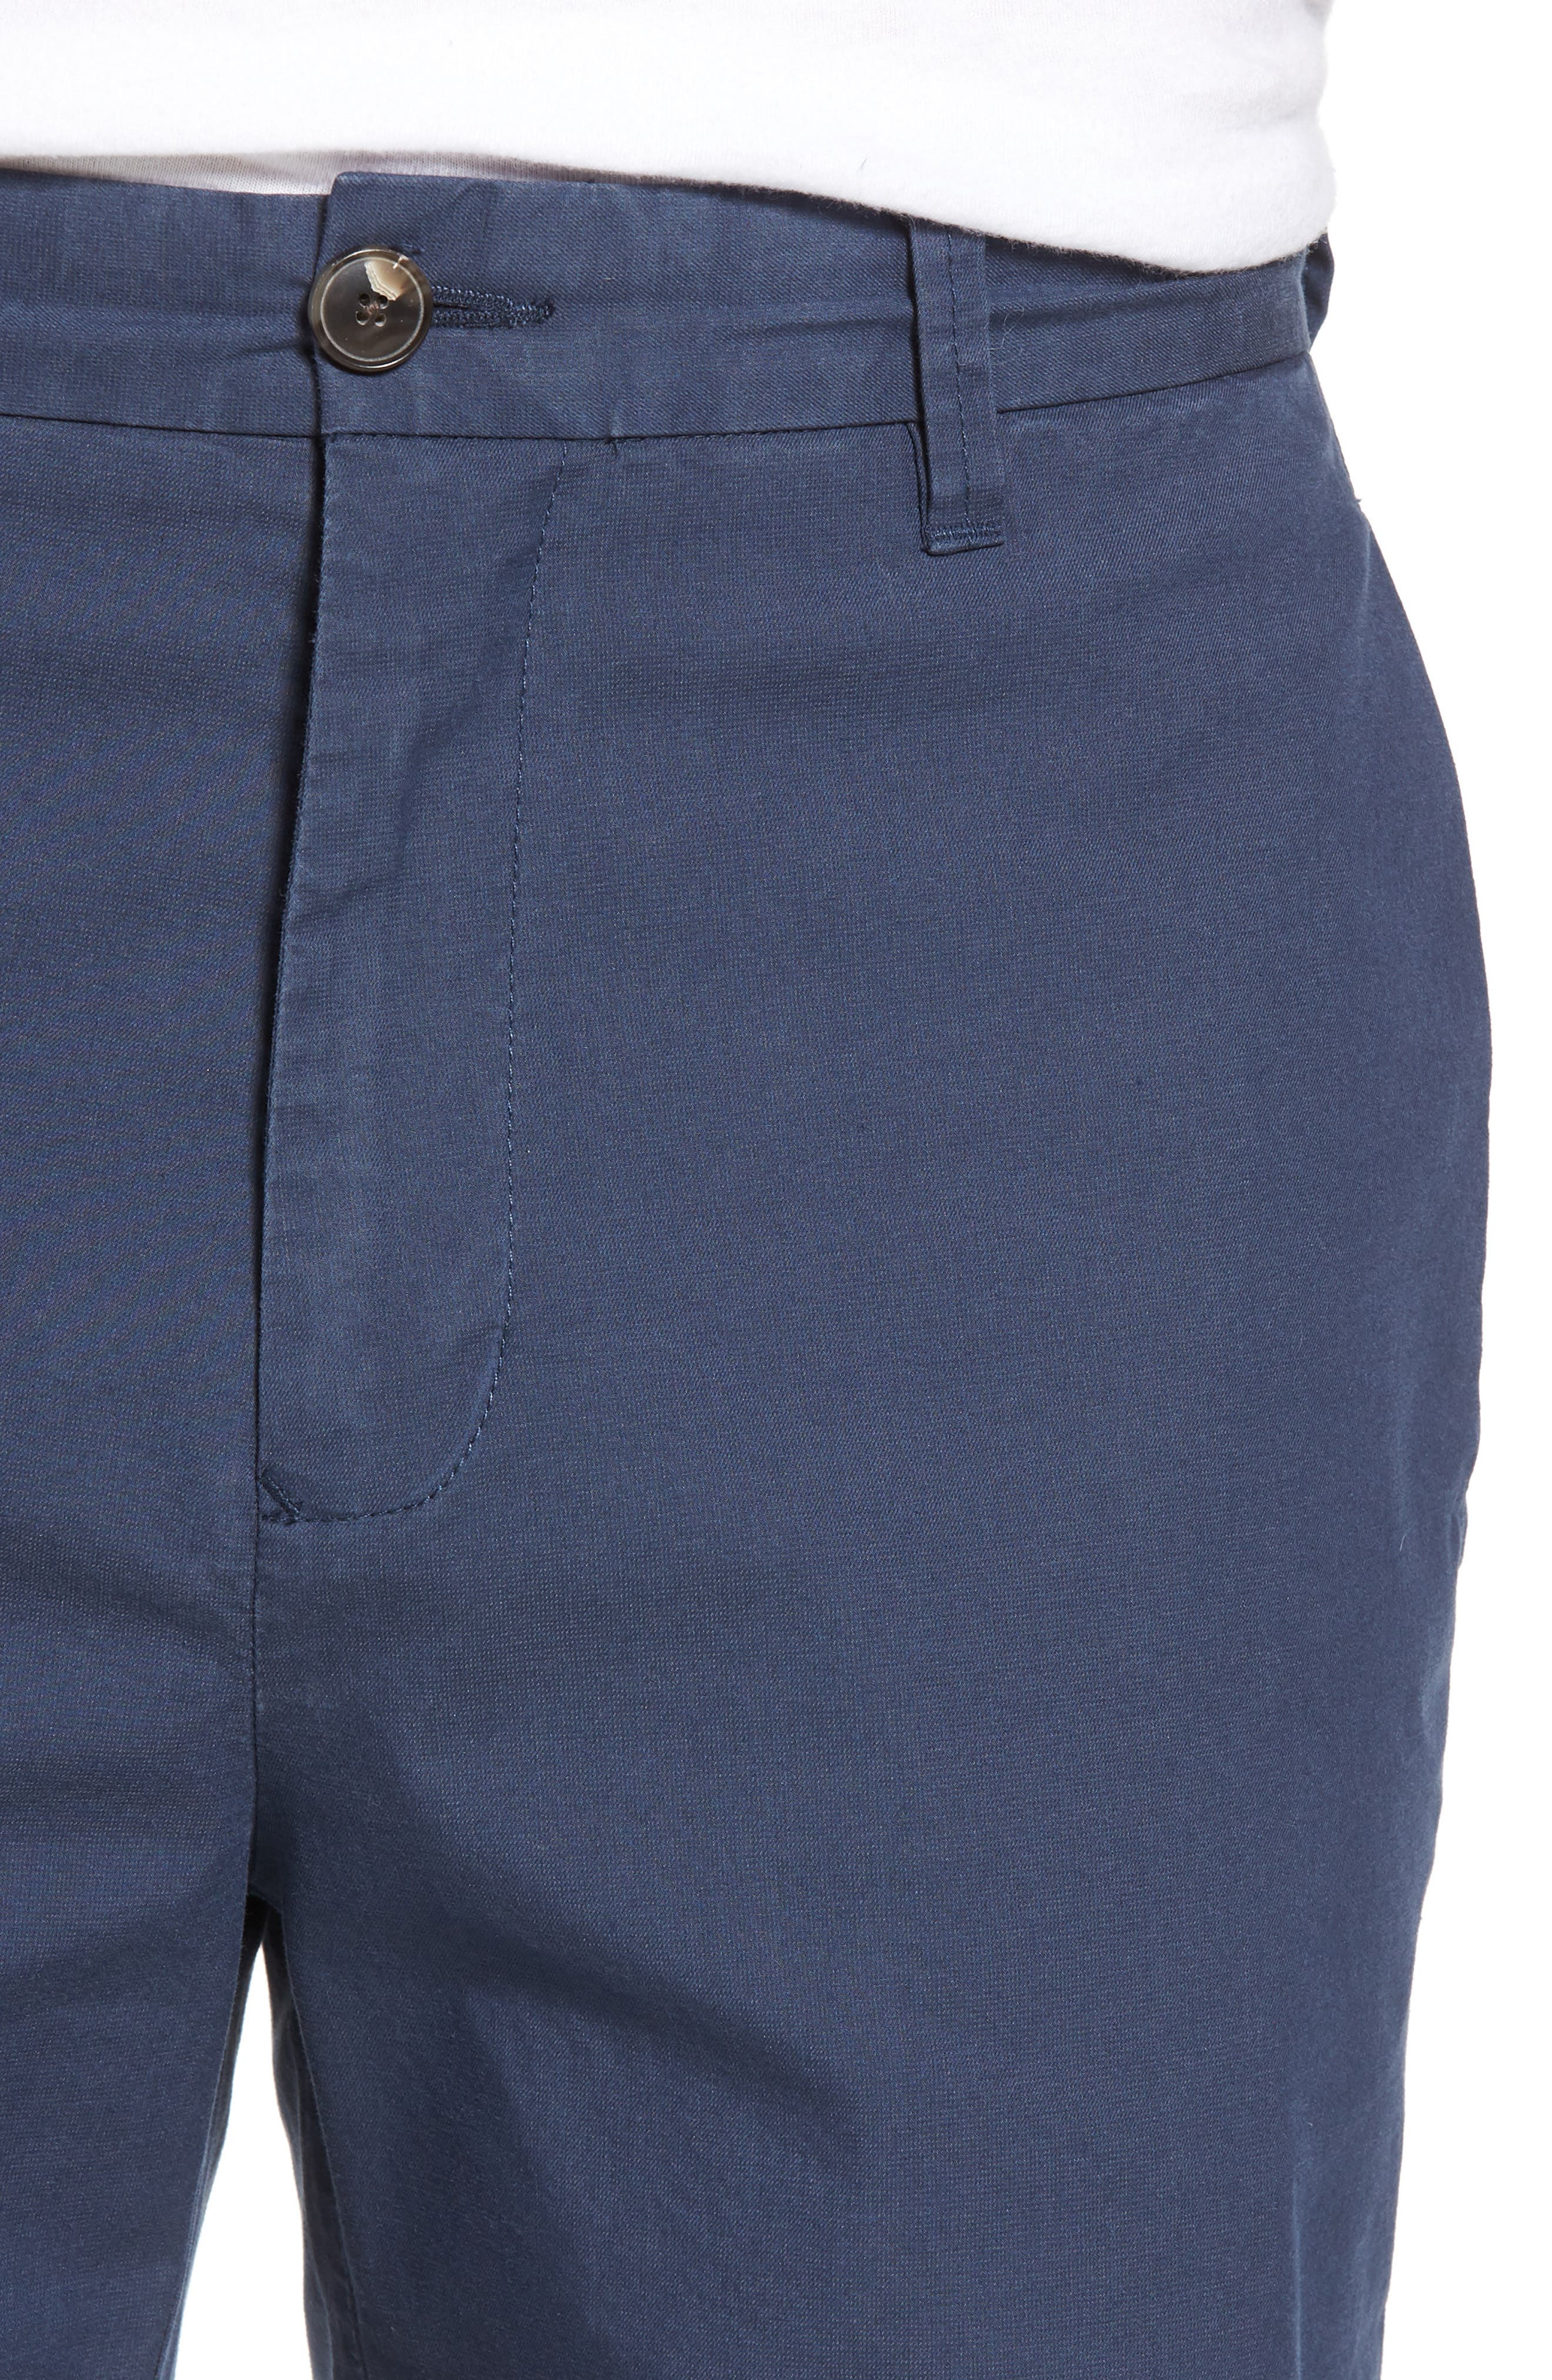 Broadway Regular Fit Chino Shorts,                             Alternate thumbnail 4, color,                             413